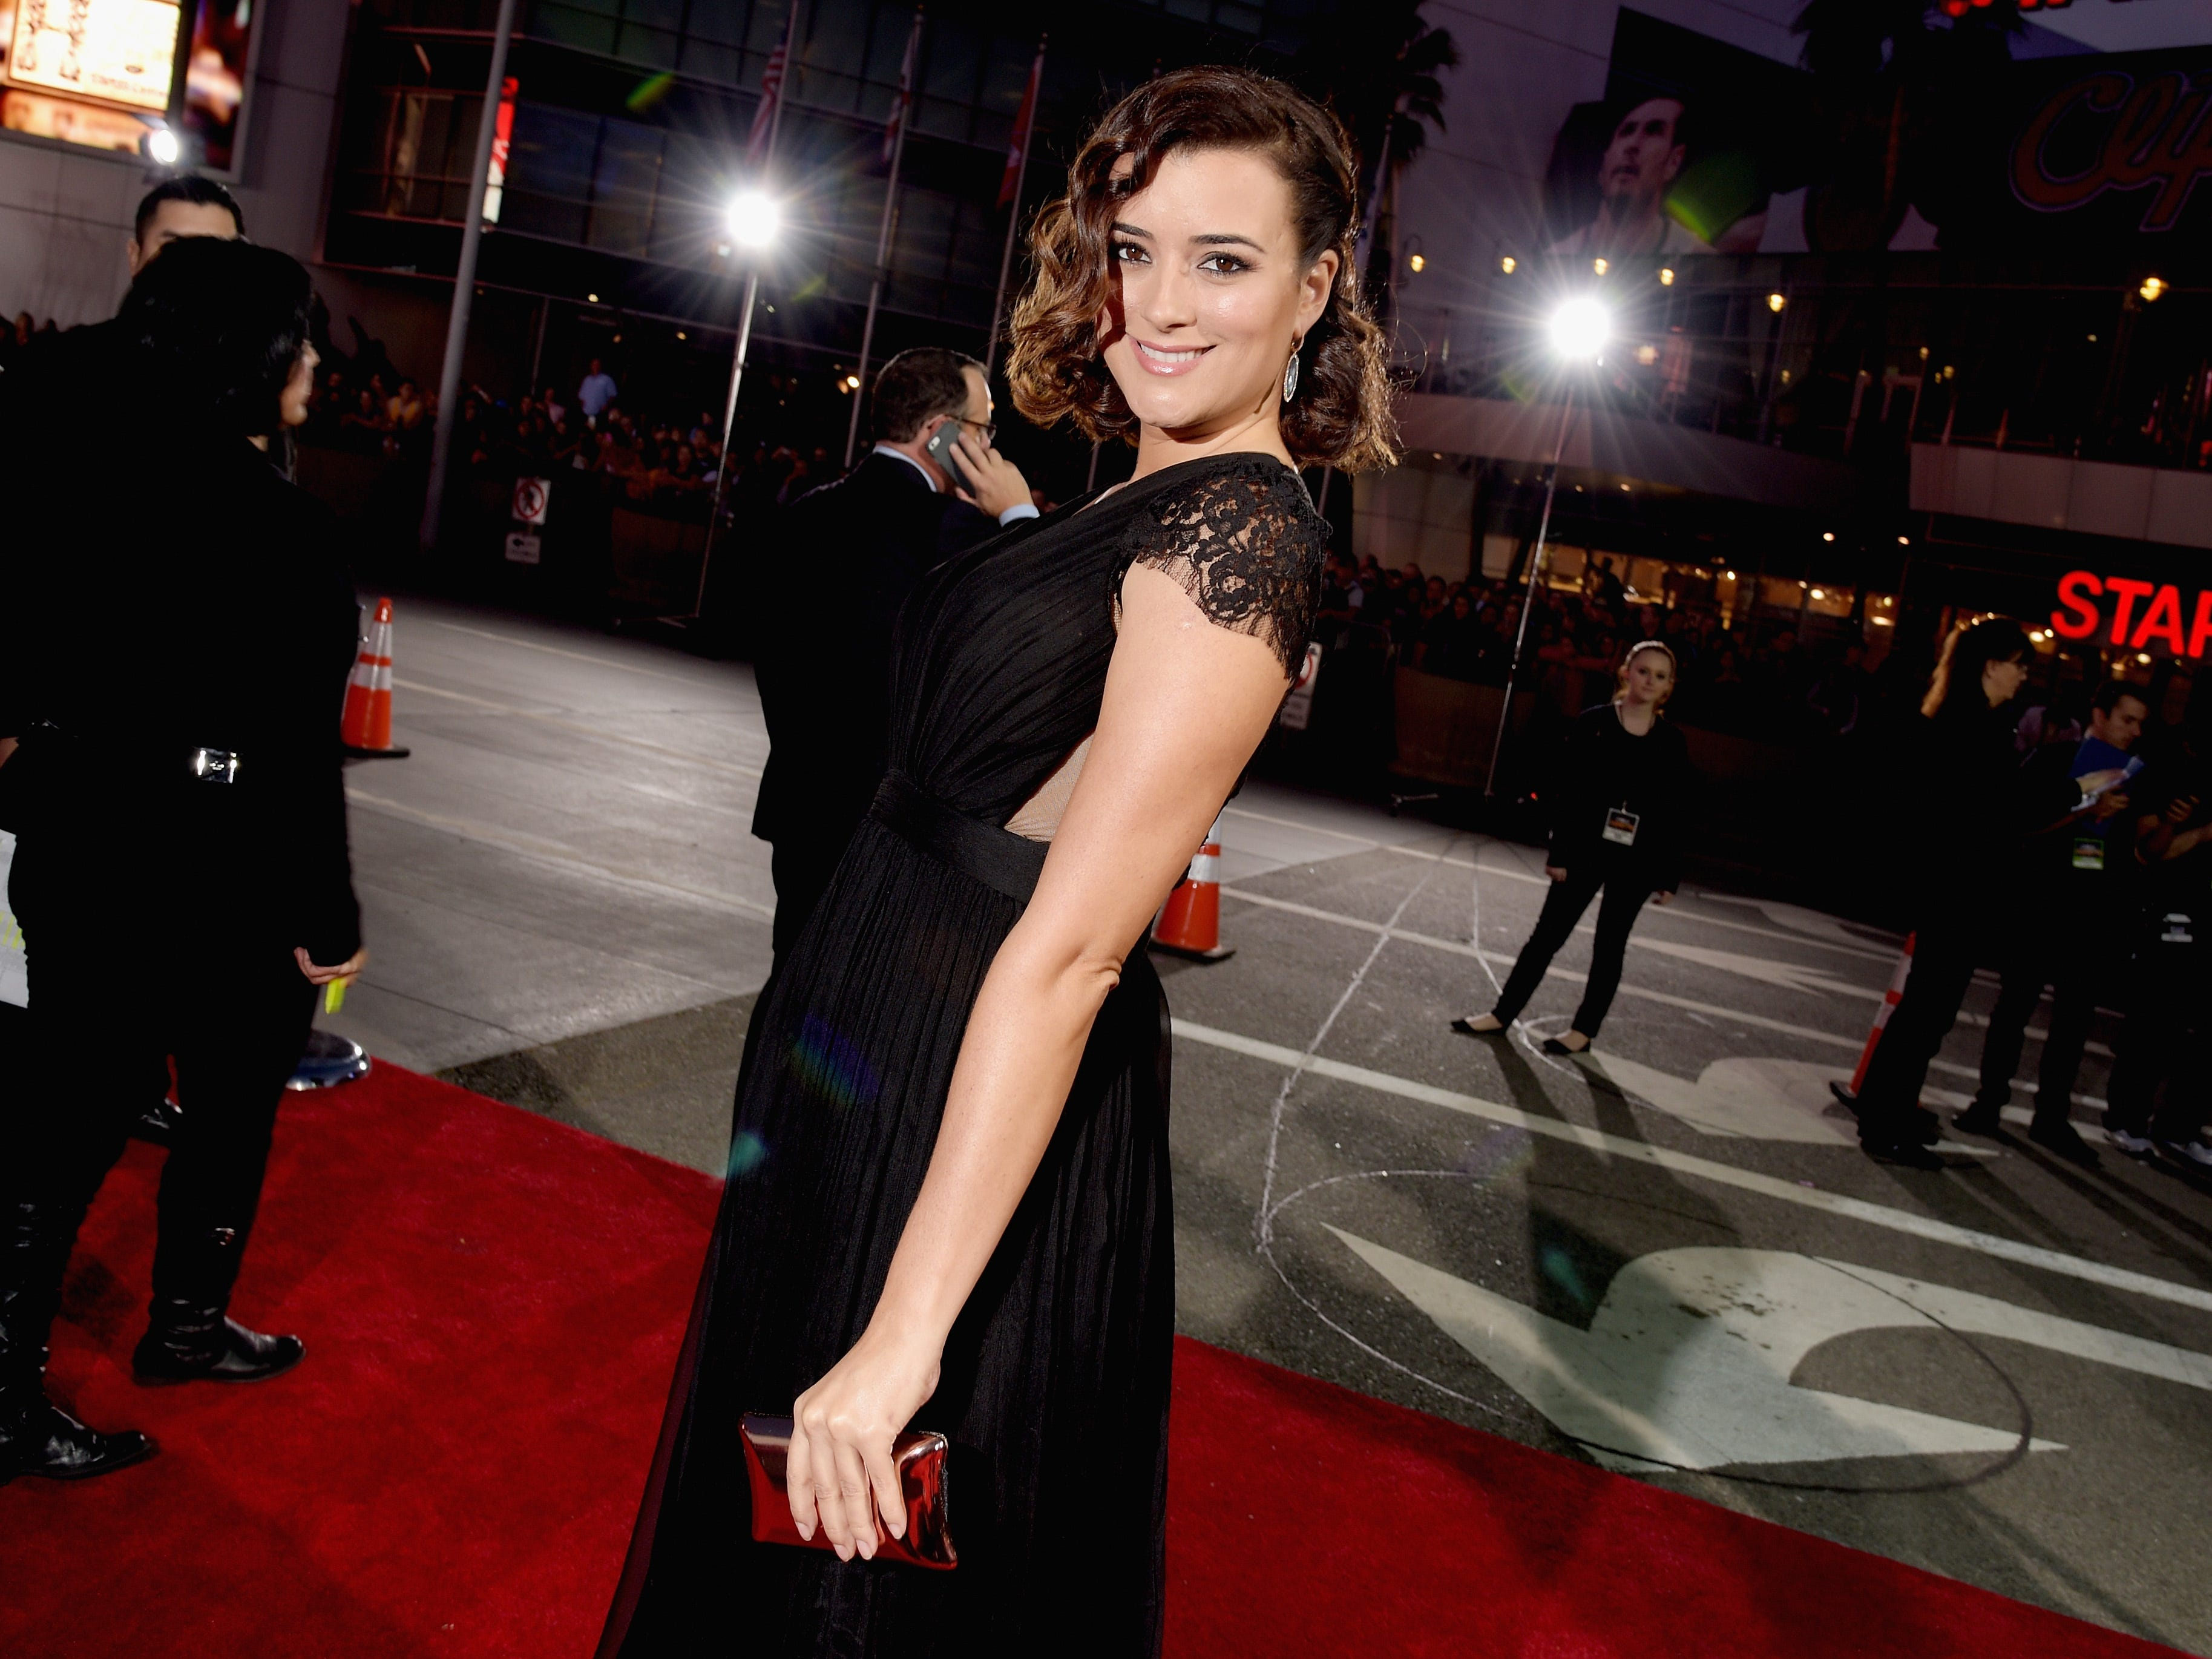 LOS ANGELES, CA - JANUARY 07:  Actress Cote de Pablo attends The 41st Annual People's Choice Awards at Nokia Theatre LA Live on January 7, 2015 in Los Angeles, California.  (Photo by) ORG XMIT: 529139419 ORIG FILE ID: 461147544